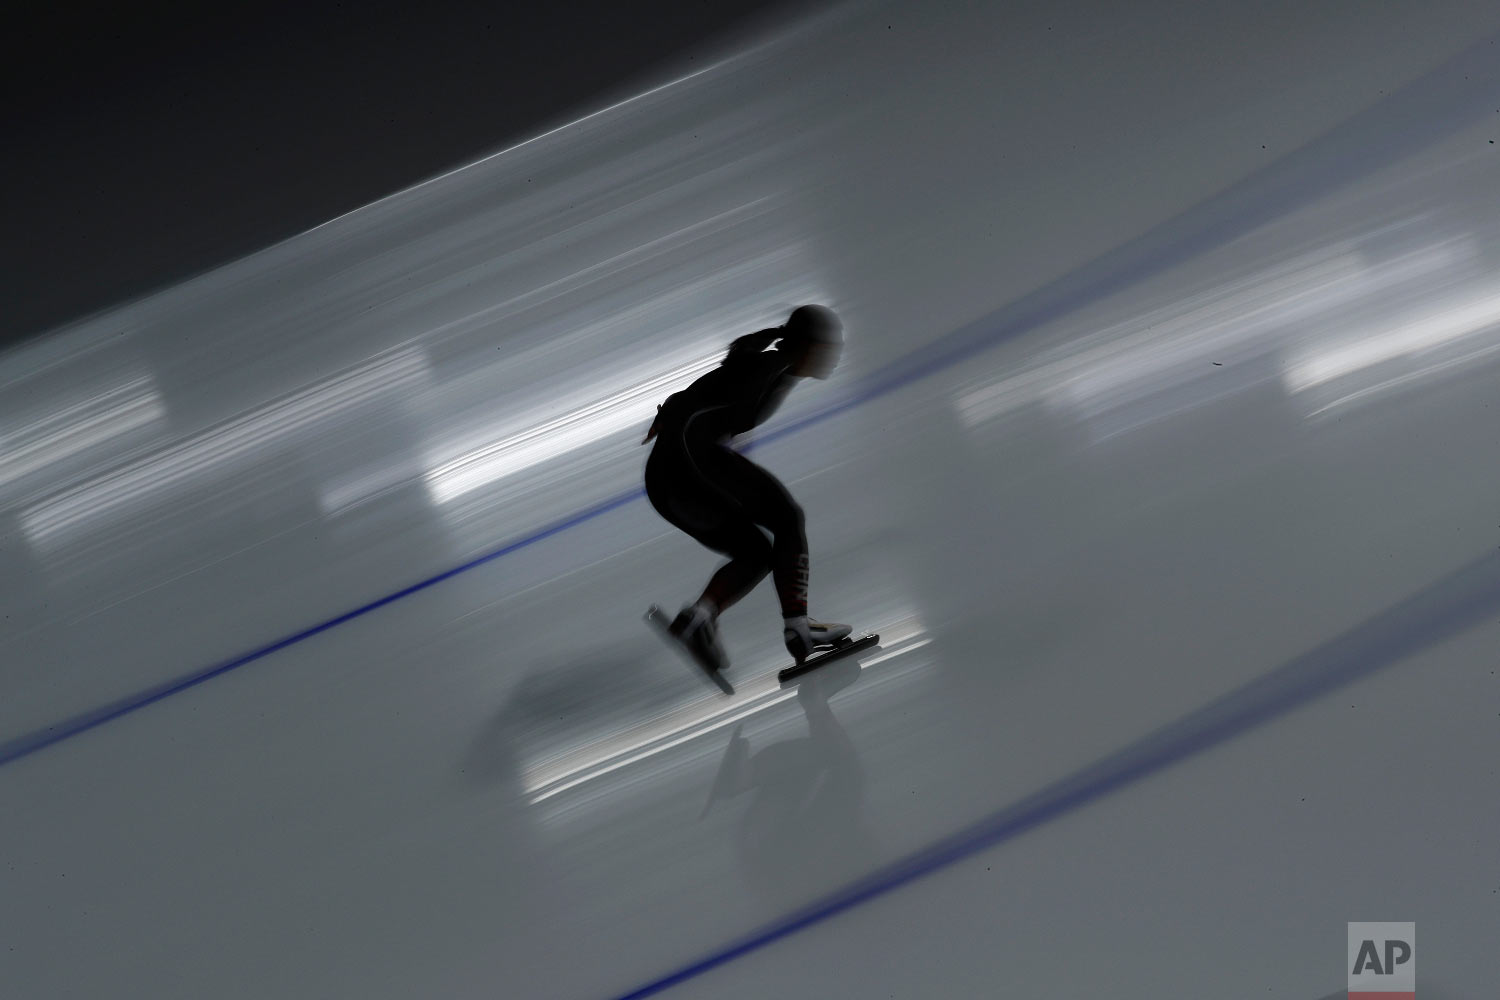 A female athlete from China is silhouetted against the reflection of a spotlight on the ice during the women's 500 meters speedskating practice session at the Gangneung Oval at the 2018 Winter Olympics in Gangneung, South Korea, Saturday, Feb. 17, 2018. (AP Photo/John Locher)